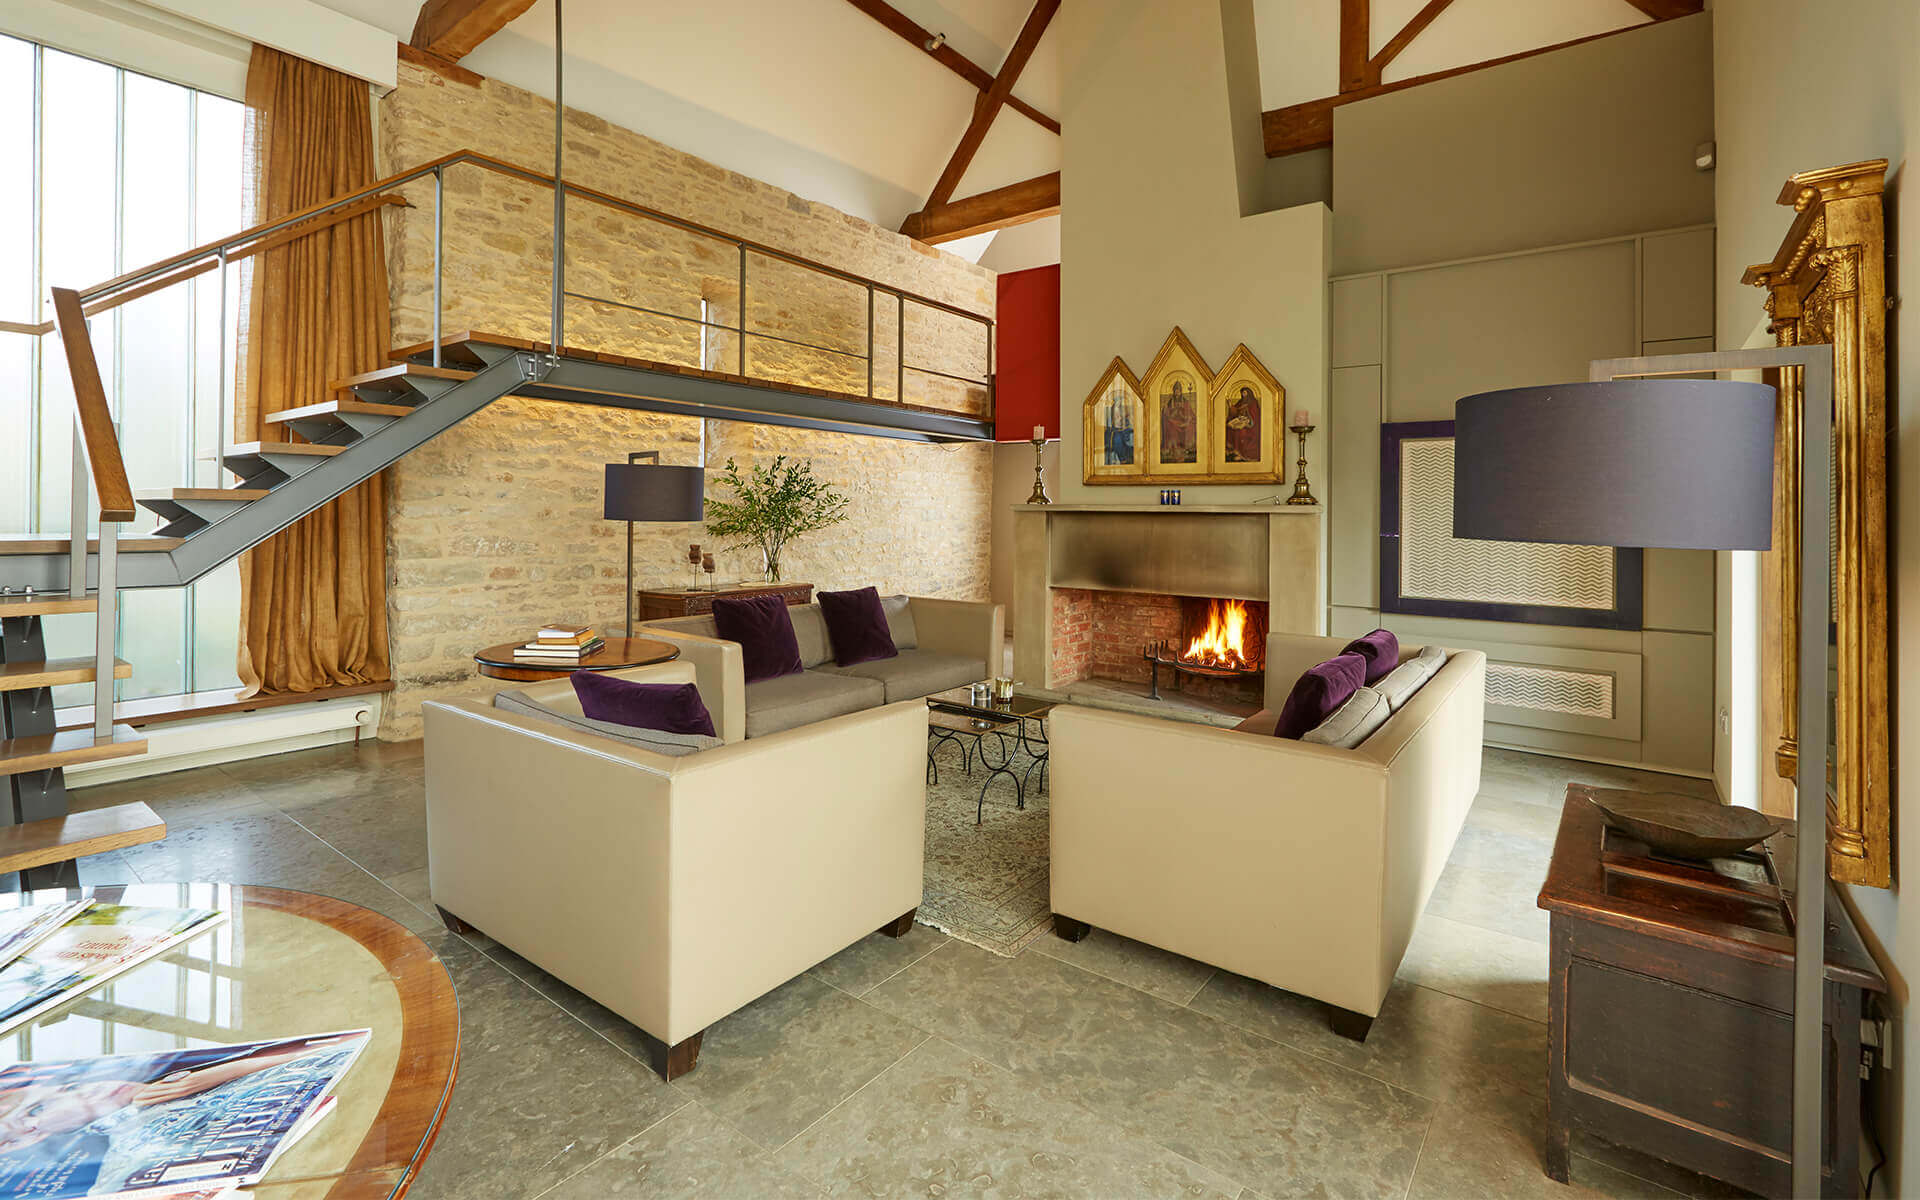 Open living room with fireplace and suspended walkway with stairs.